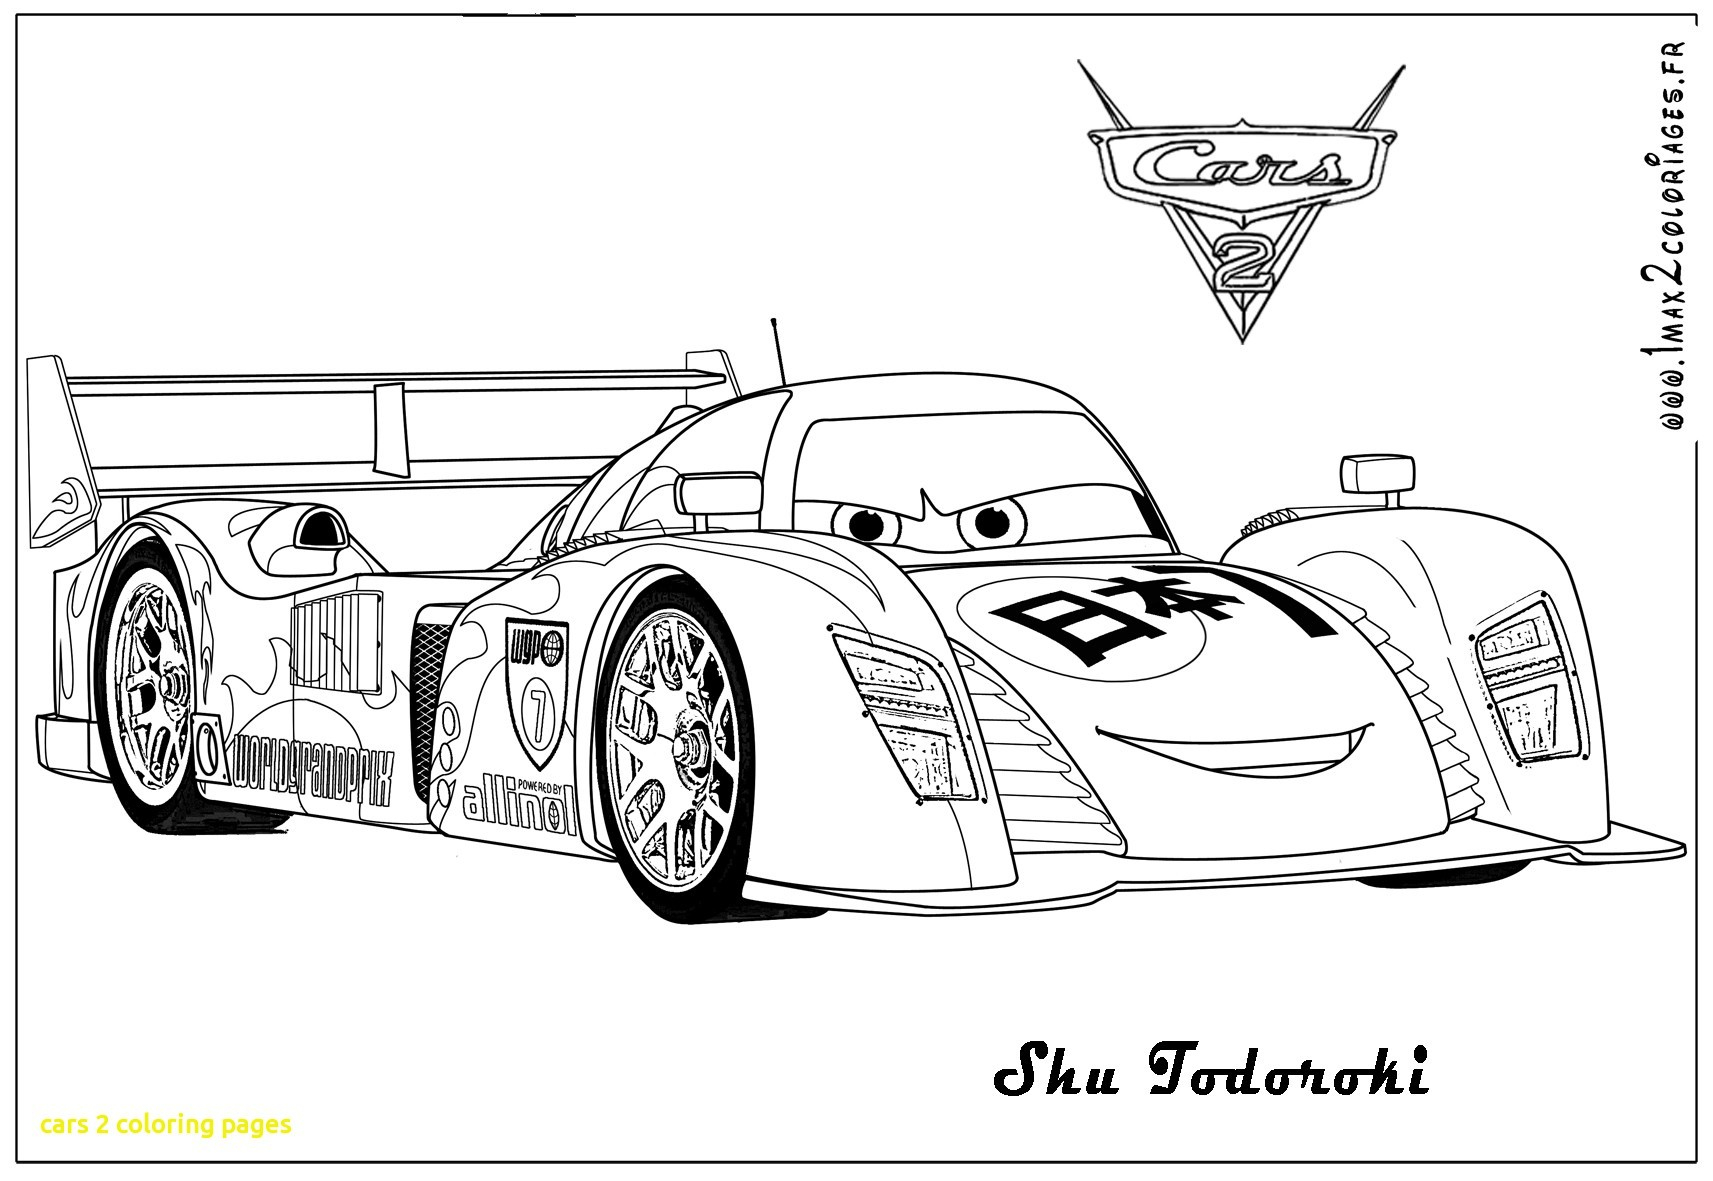 Cars 2 Coloring Pages with Cars 2 Coloring Pages with Cars 2 Gallery Of Disney Car Coloring Pages Cars Free Download